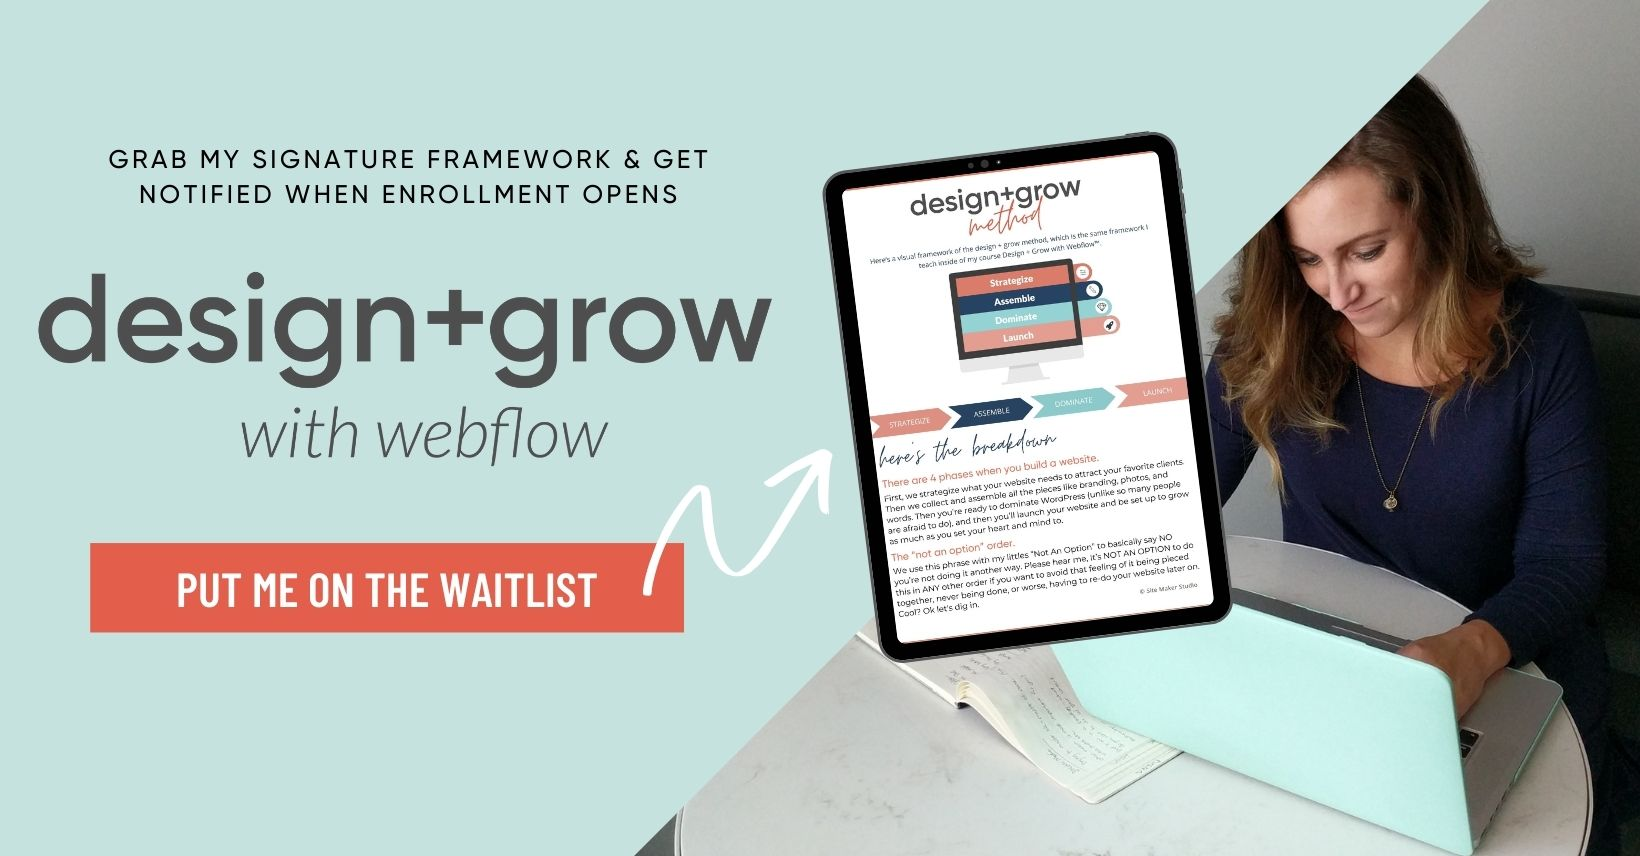 design & grow with webflow waiting list for course